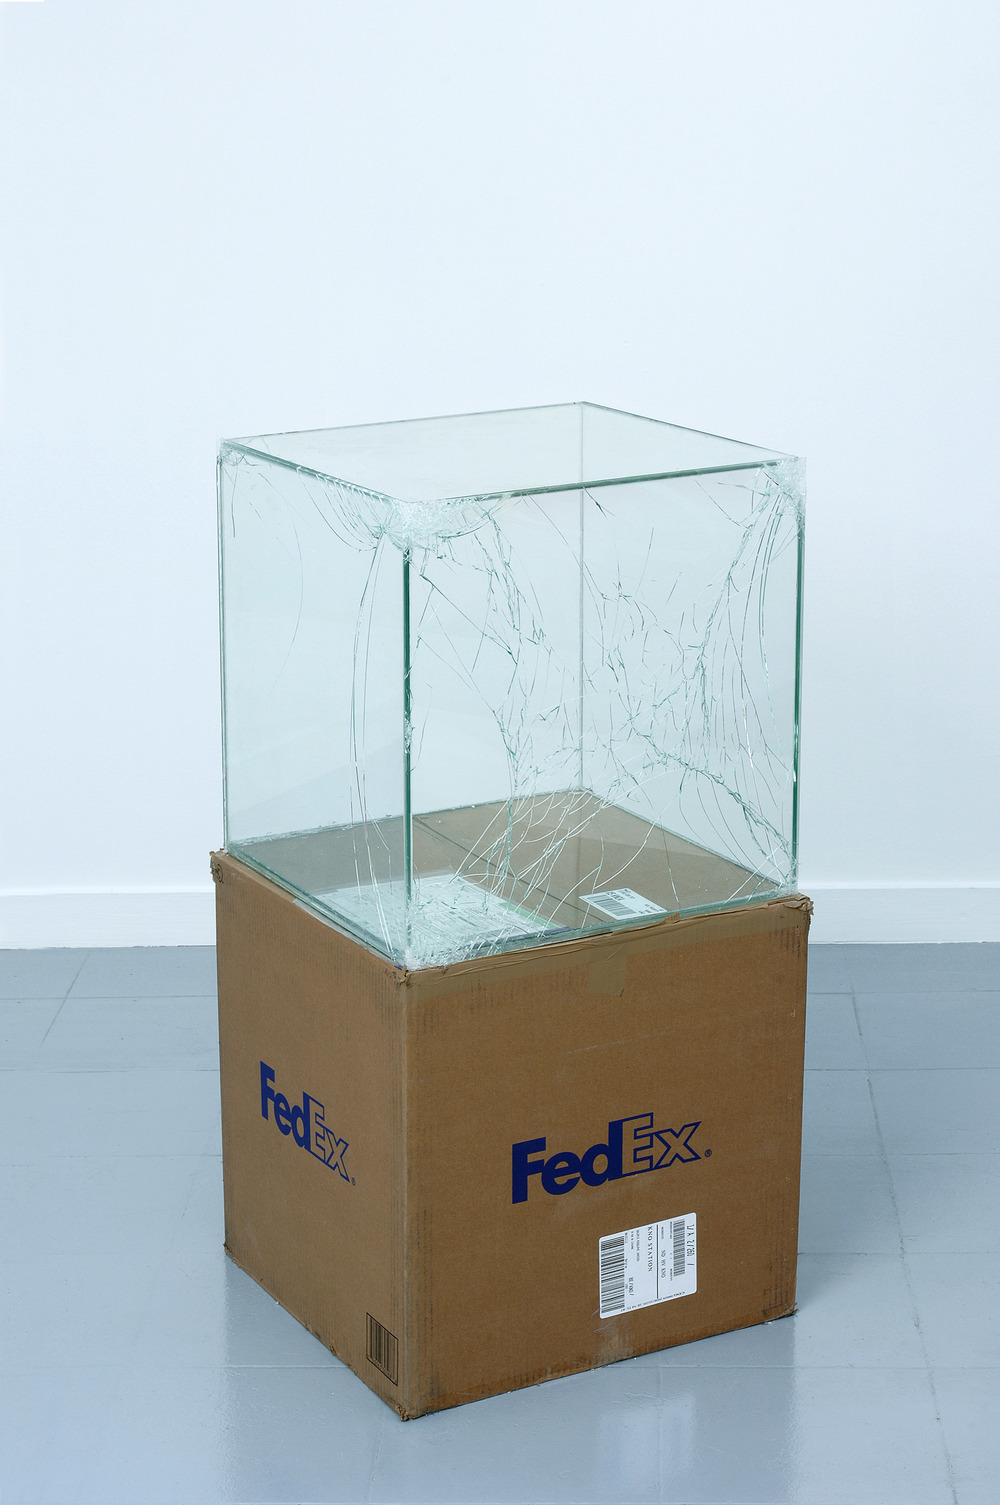 FedEx Large Kraft Box 2005 FEDEX 330508 REV 10/05 SSCC, International Priority, Los Angeles–Brussels trk#865282057964, October 27–30, 2008, International Priority, Brussels–Los Angeles trk#866071746385, Janurary 8–9, 2009, Standard Overnight, Los Angeles–New York trk#872632033108, April 29–30, 2010, Standard Overnight, New York–Los Angeles trk#796210730703, September 2–3, 2010, Priority Overnight, Los Angeles–New York trk#794583197877, March 28–29, 2011, Priority Overnight, New York–Los Angeles trk#611849858596, January 13–14, 2015    2008–   Laminated glass, FedEx shipping box, accrued FedEx shipping and tracking labels, silicone, metal, and tape  20 x 20 x 20 inches   FedEx Glass Works, 2007–